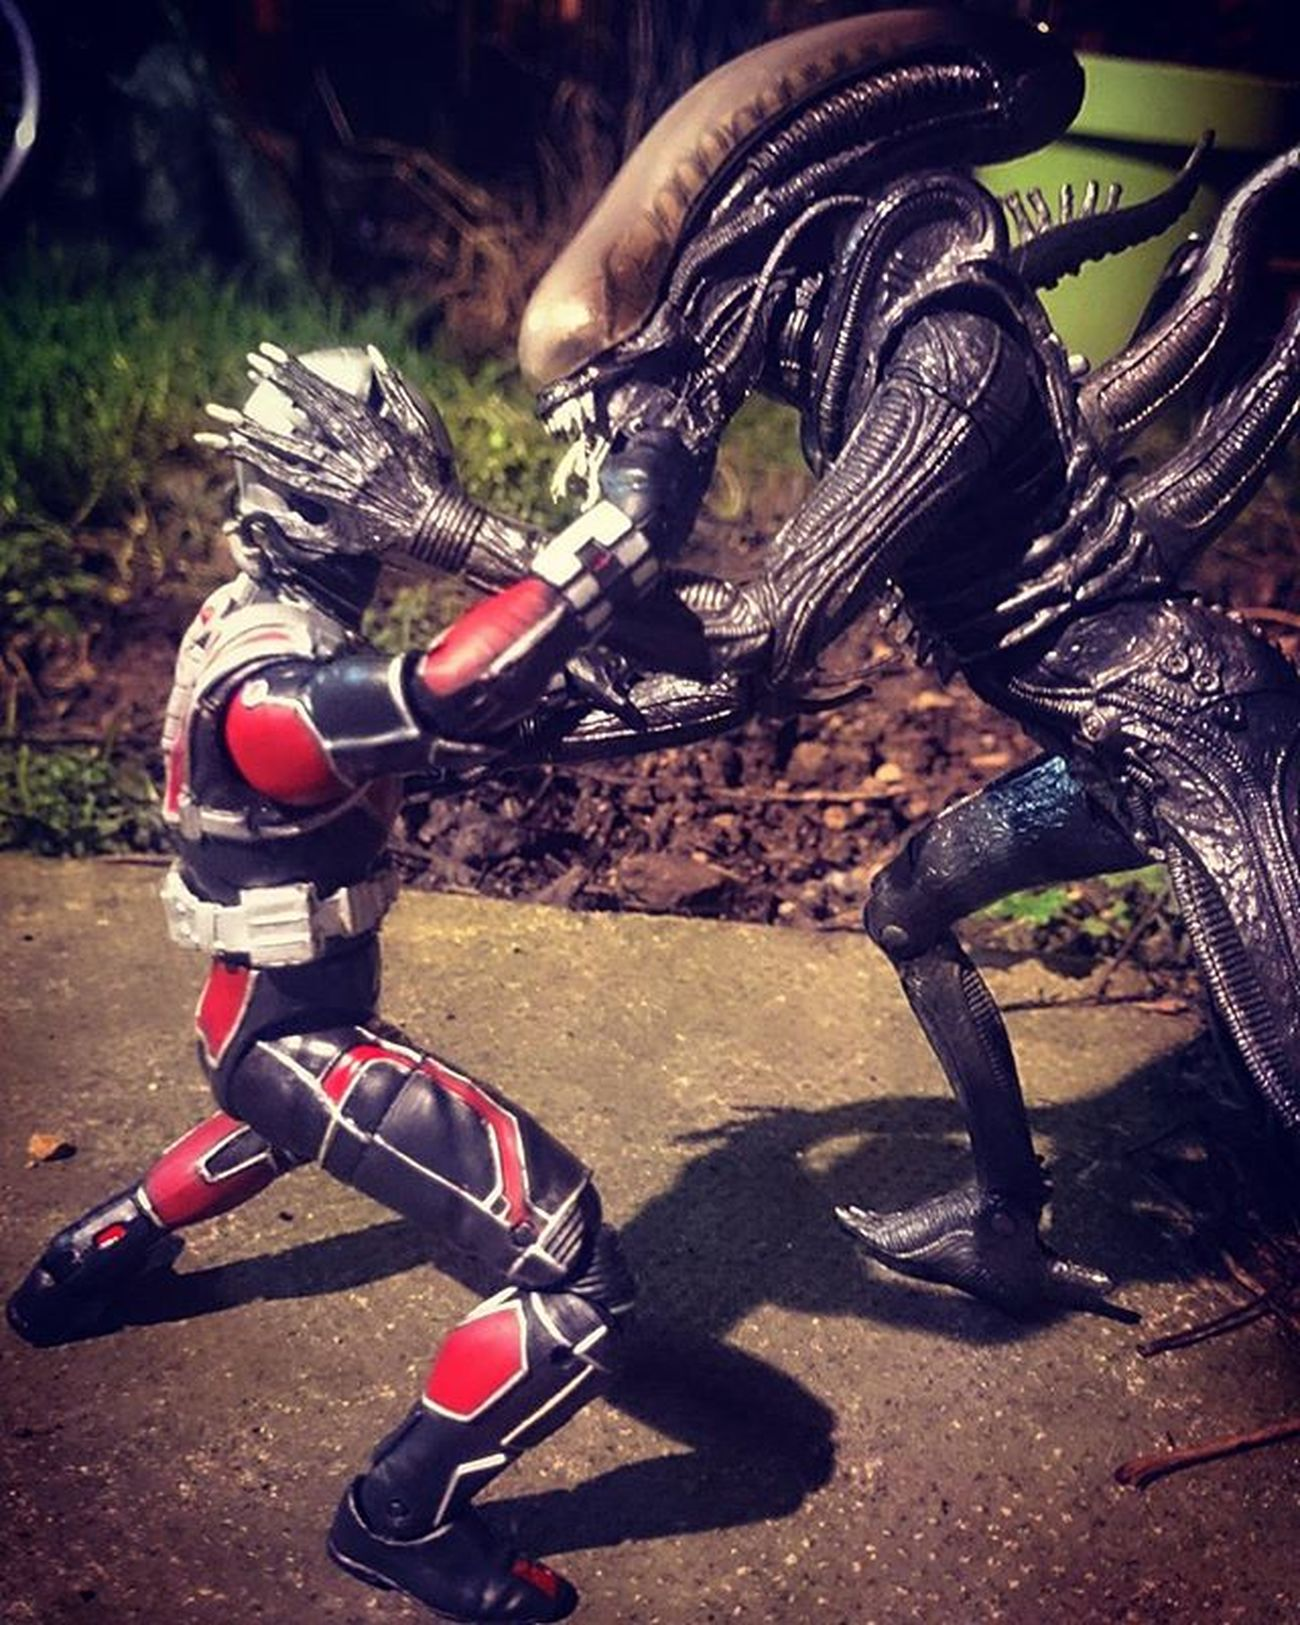 I asked antman for a JANTMANuary day 10 pose but he said he had a prior engagement..... Xenomorphs don't punch themselves you know! JANTMANuary Antman Marvel Toyptoyphotography Toyoutsiders Toypops Toycrewbuddies Toygroup_alliance Toydiscovery Toy_syn Wheretoysdwell_photofeatures Wheretoysdwell Alien Xenomorph Geoffthexenomorph Toyark Toyartistry Epictoyart